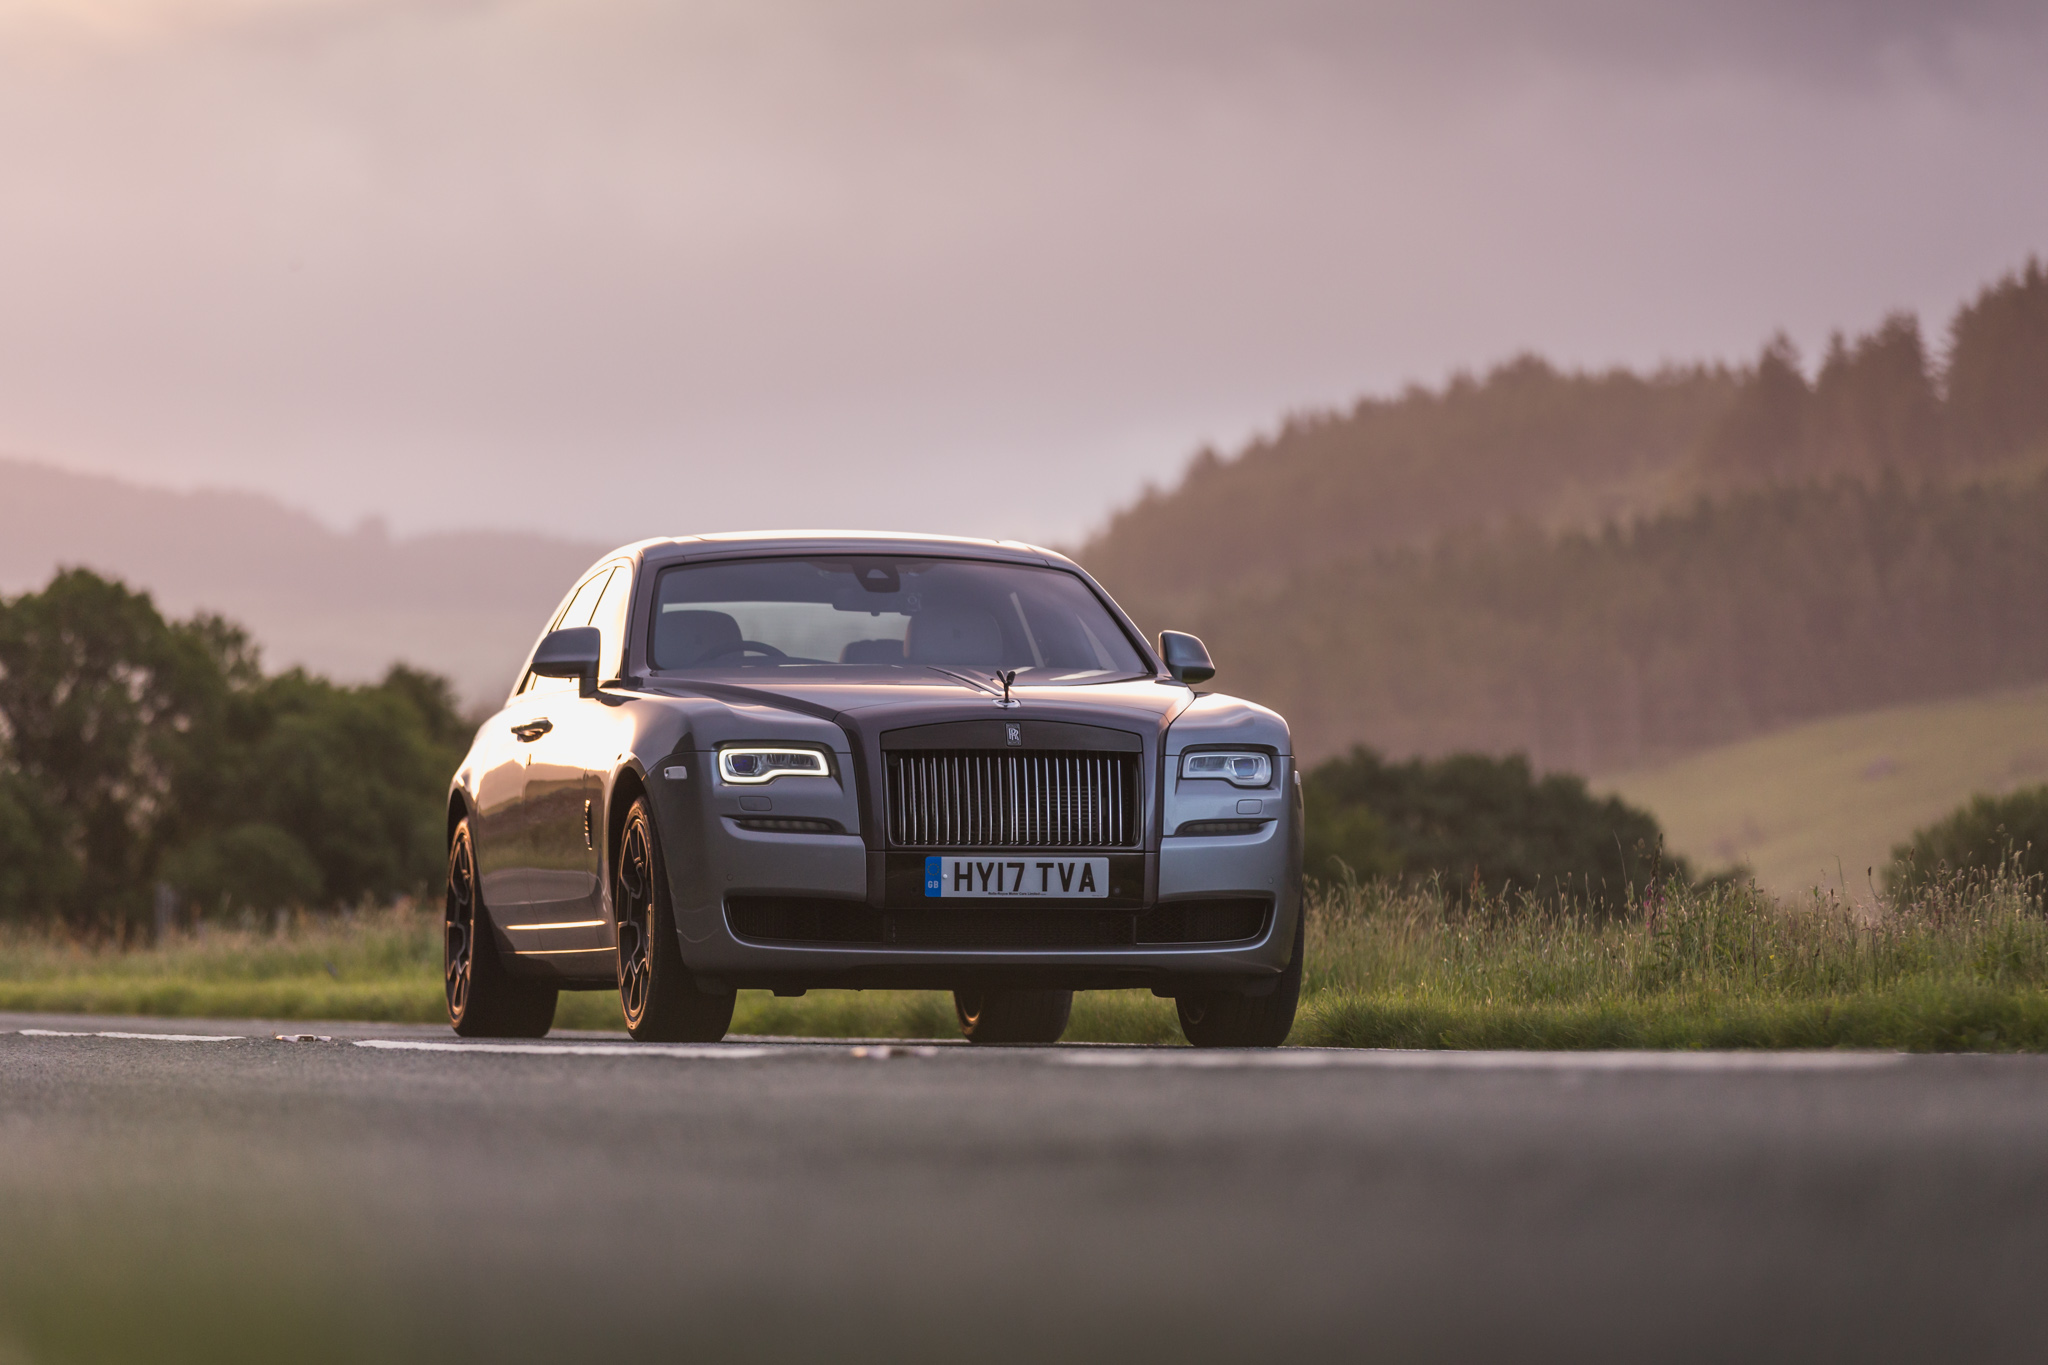 Rolls Royce Ghost Black Badge >> 2017 Rolls-Royce Ghost Black Badge Review: Stylish And